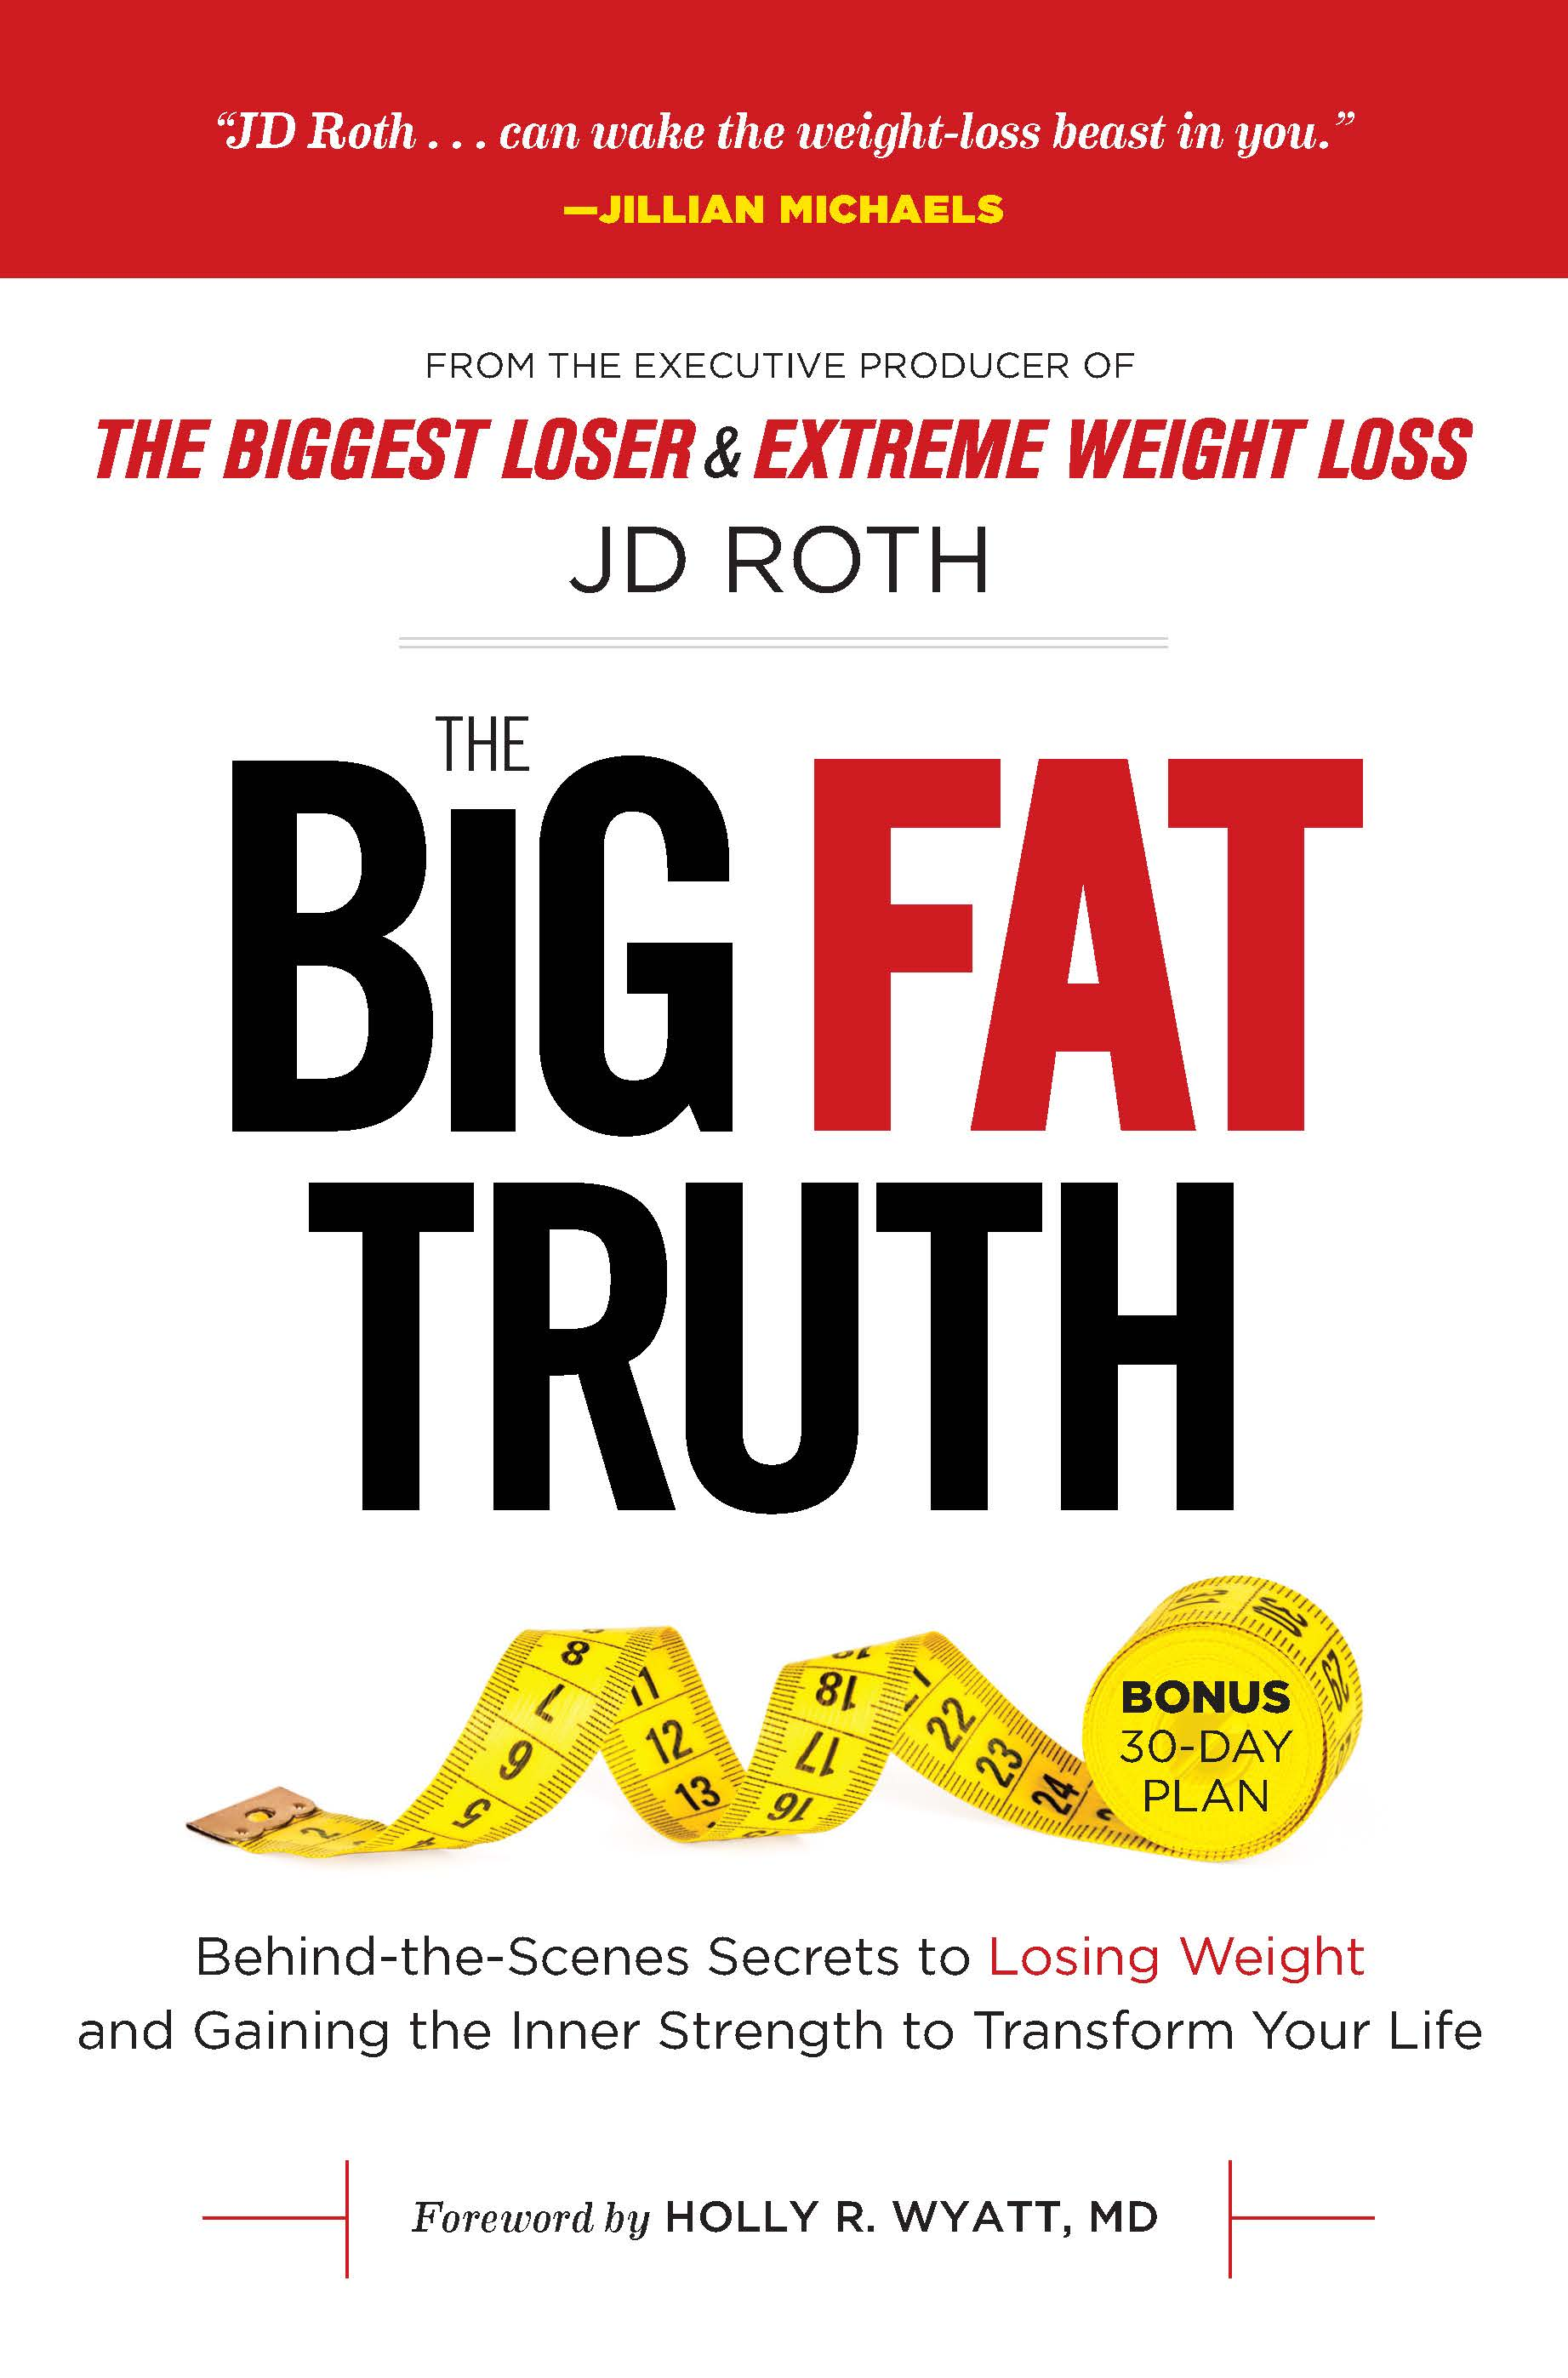 bww interview biggest loser and extreme weight loss producer bww interview biggest loser and extreme weight loss producer jd roth talks weight loss secrets motivation setbacks and new book launch